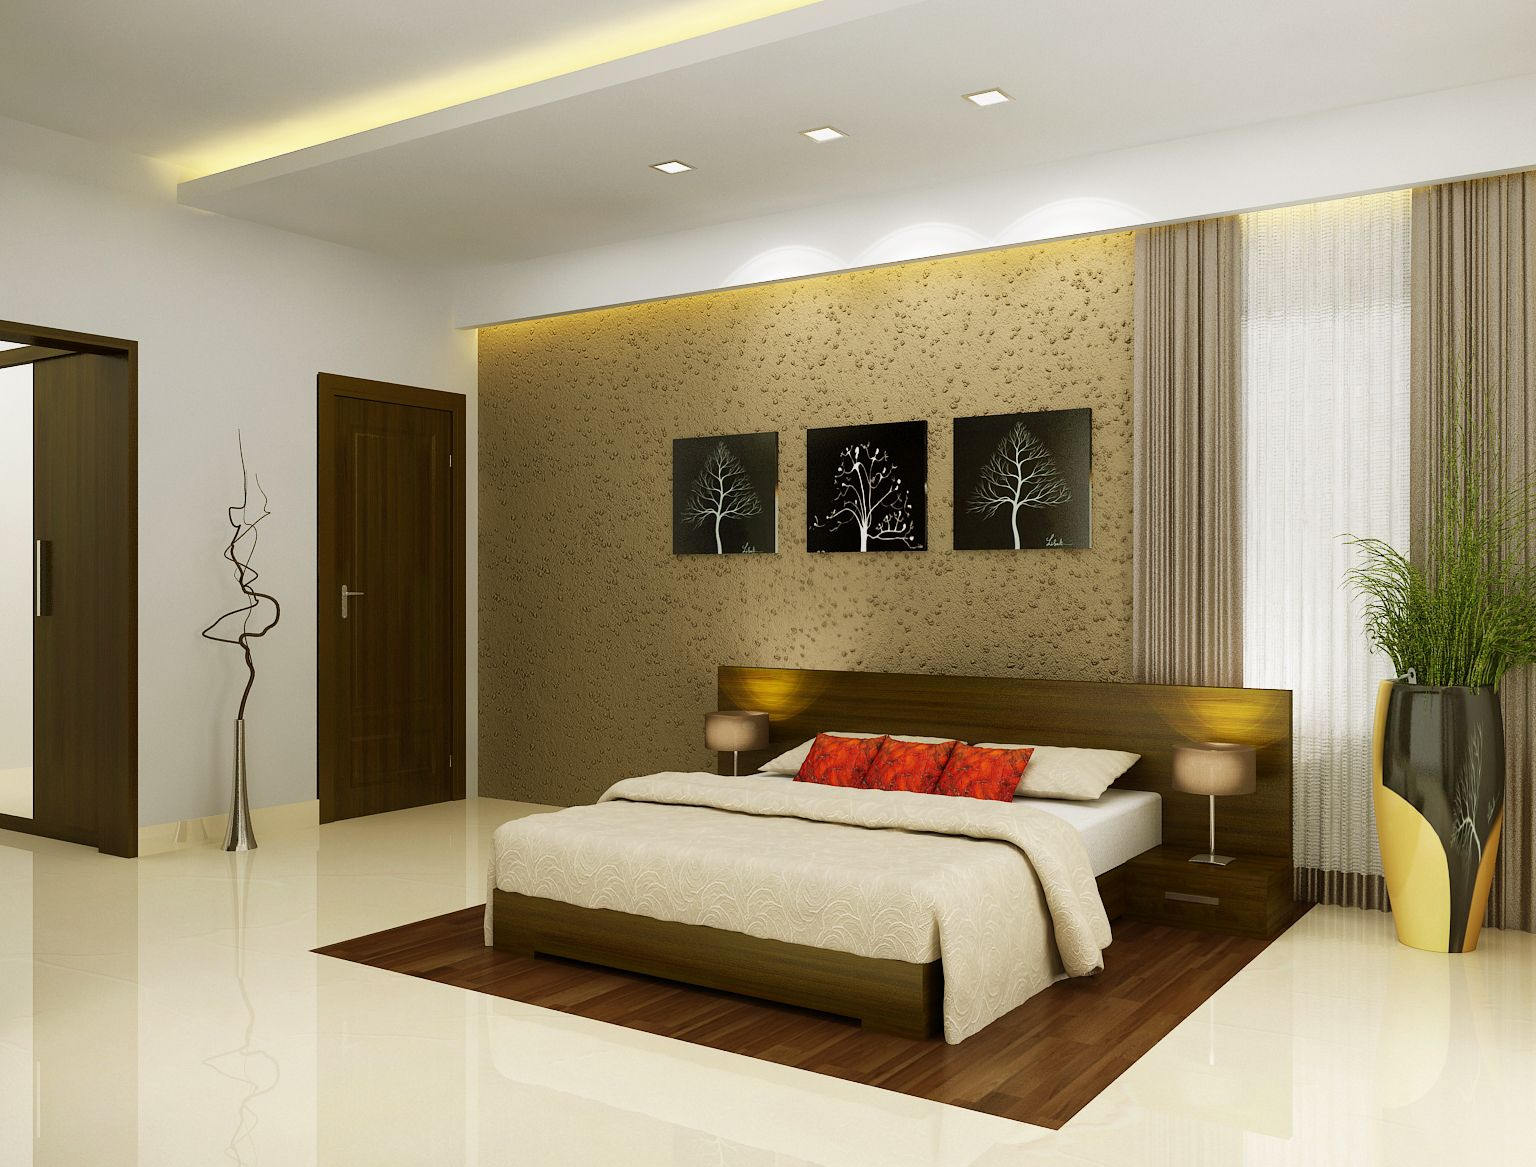 Has Your Dream Of Owning A Home Become Just That Kerala Style Designs Villa At Affordable Price